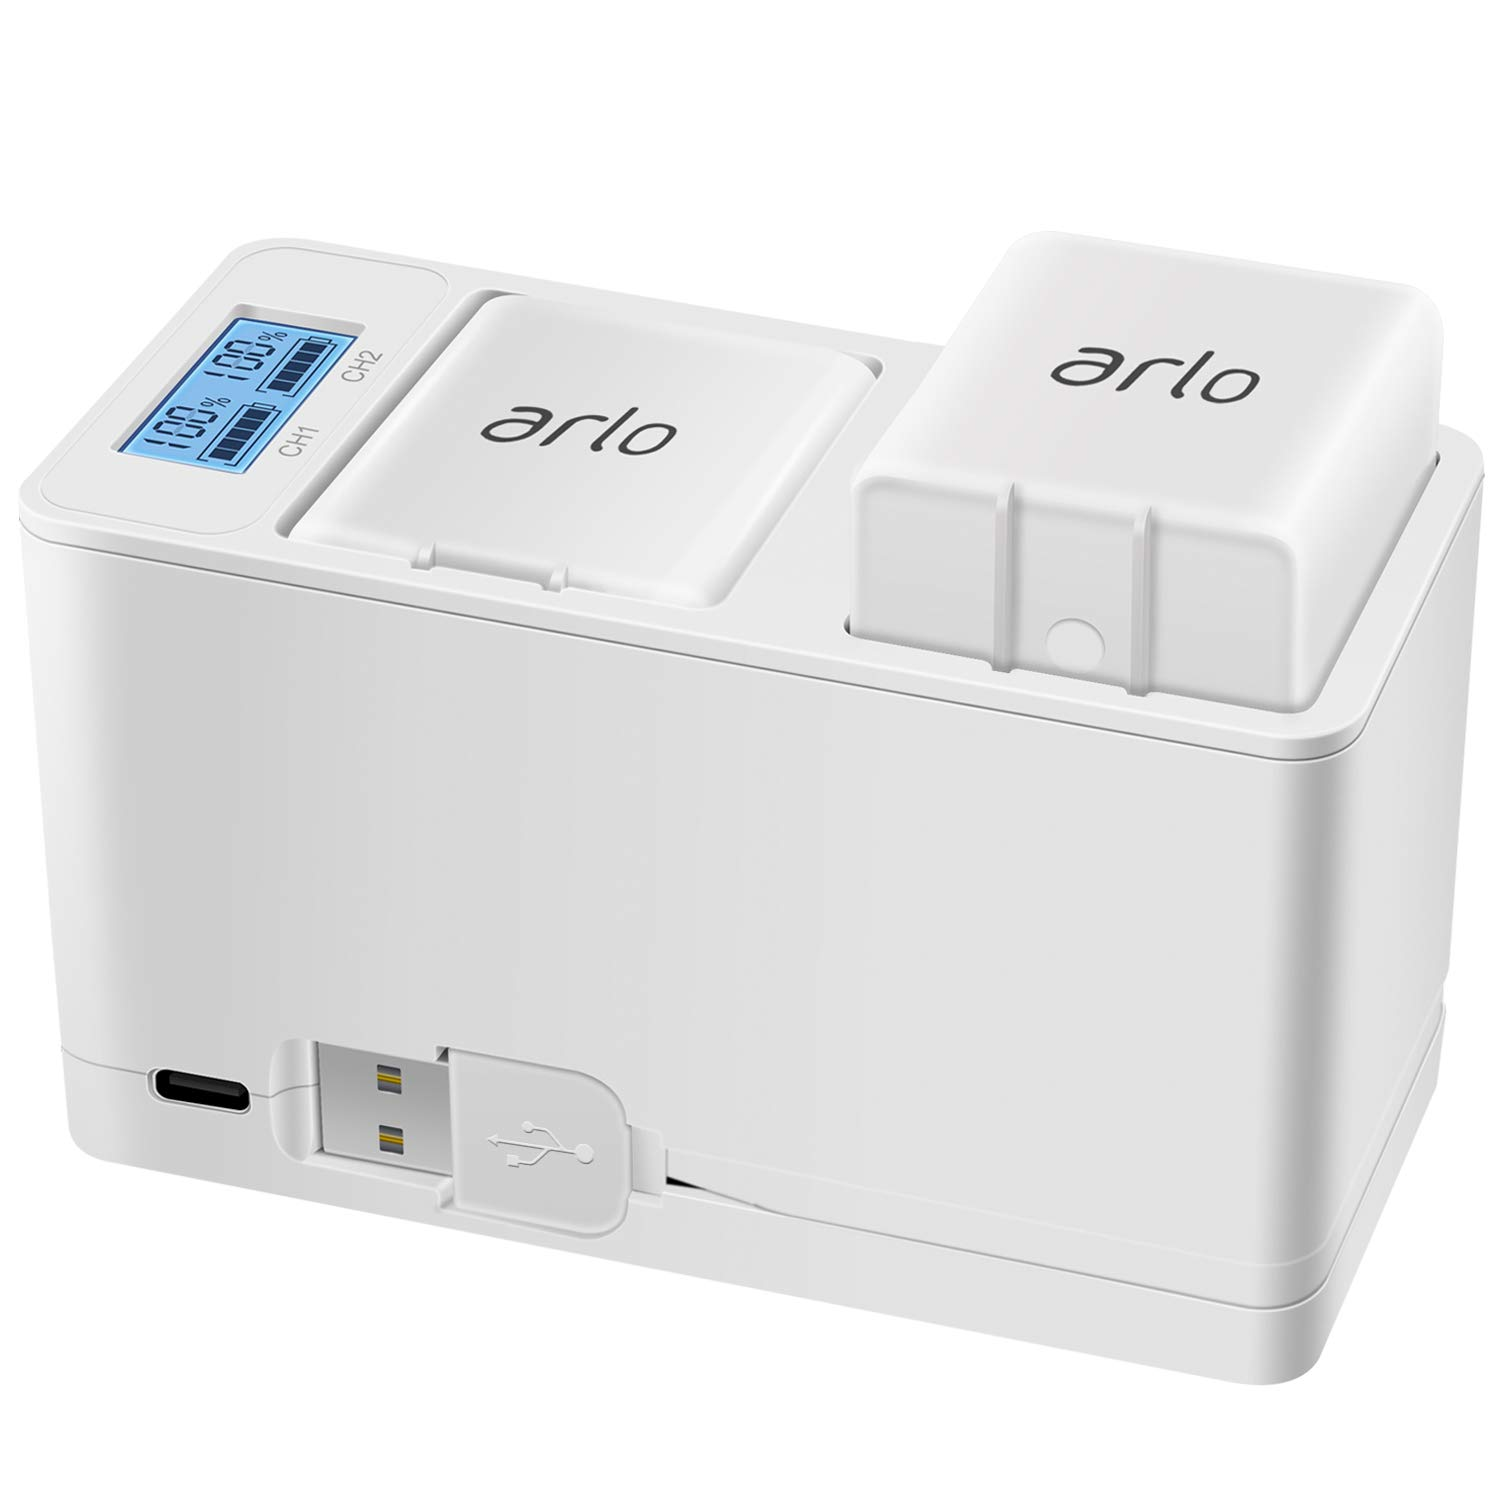 Arlo Battery Charger Station, Dual Rechargeable Batteries Charging Station for Arlo Pro/Pro 2/Go Camera with Type C Port and USB C Cable